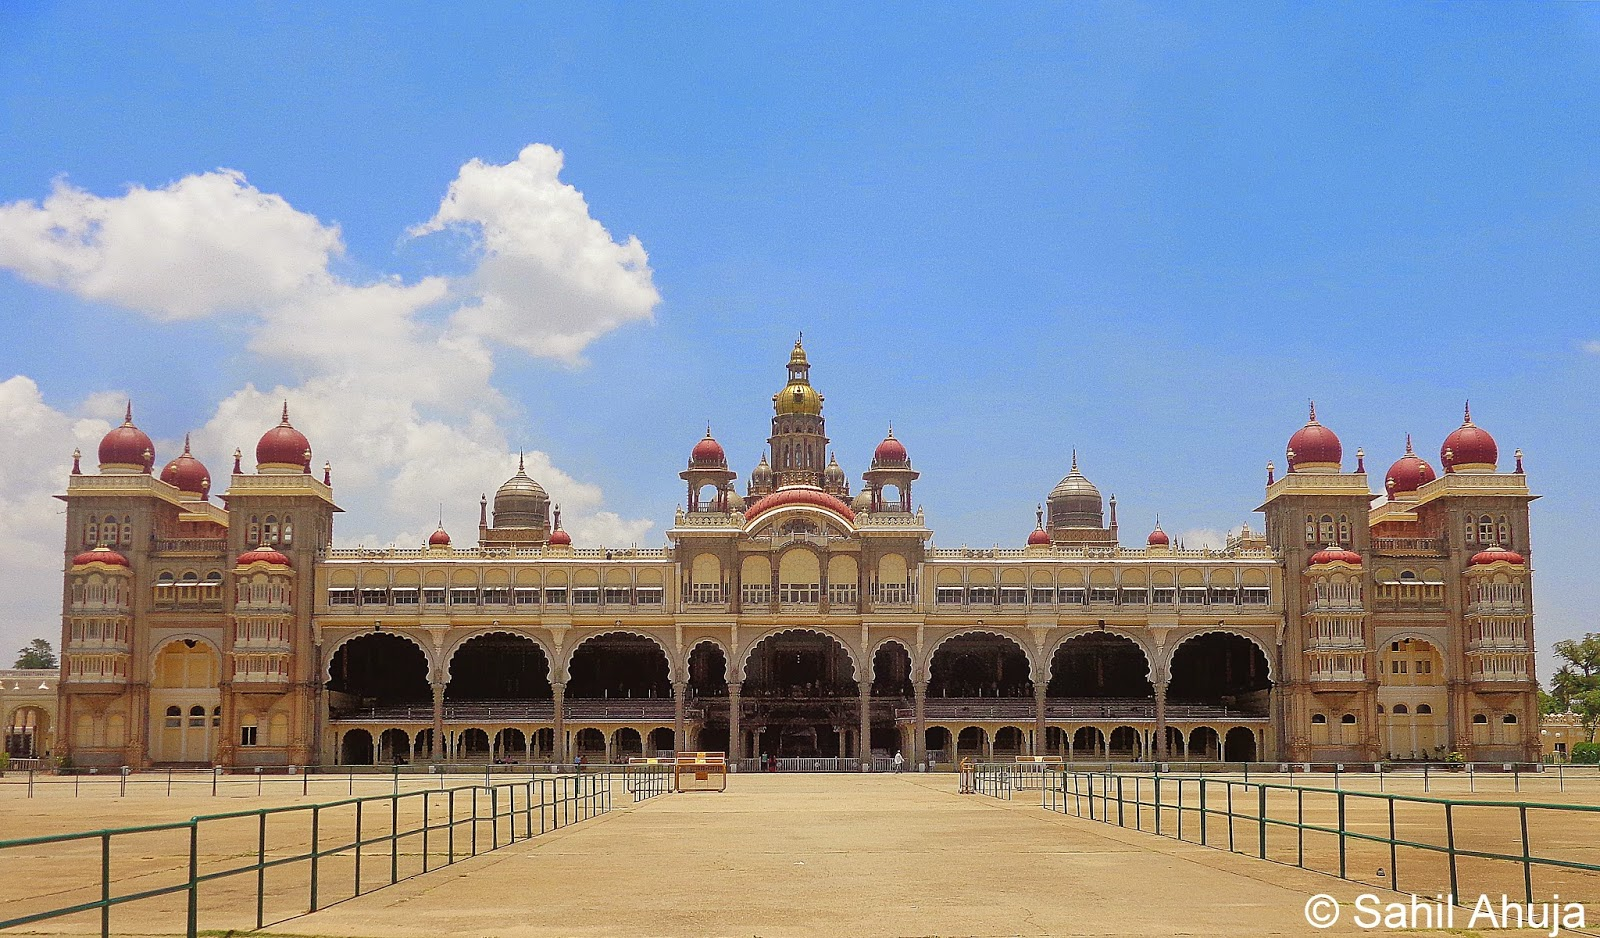 essay on mysore palace Free essays on mysore palace get help with your writing 1 through 30.